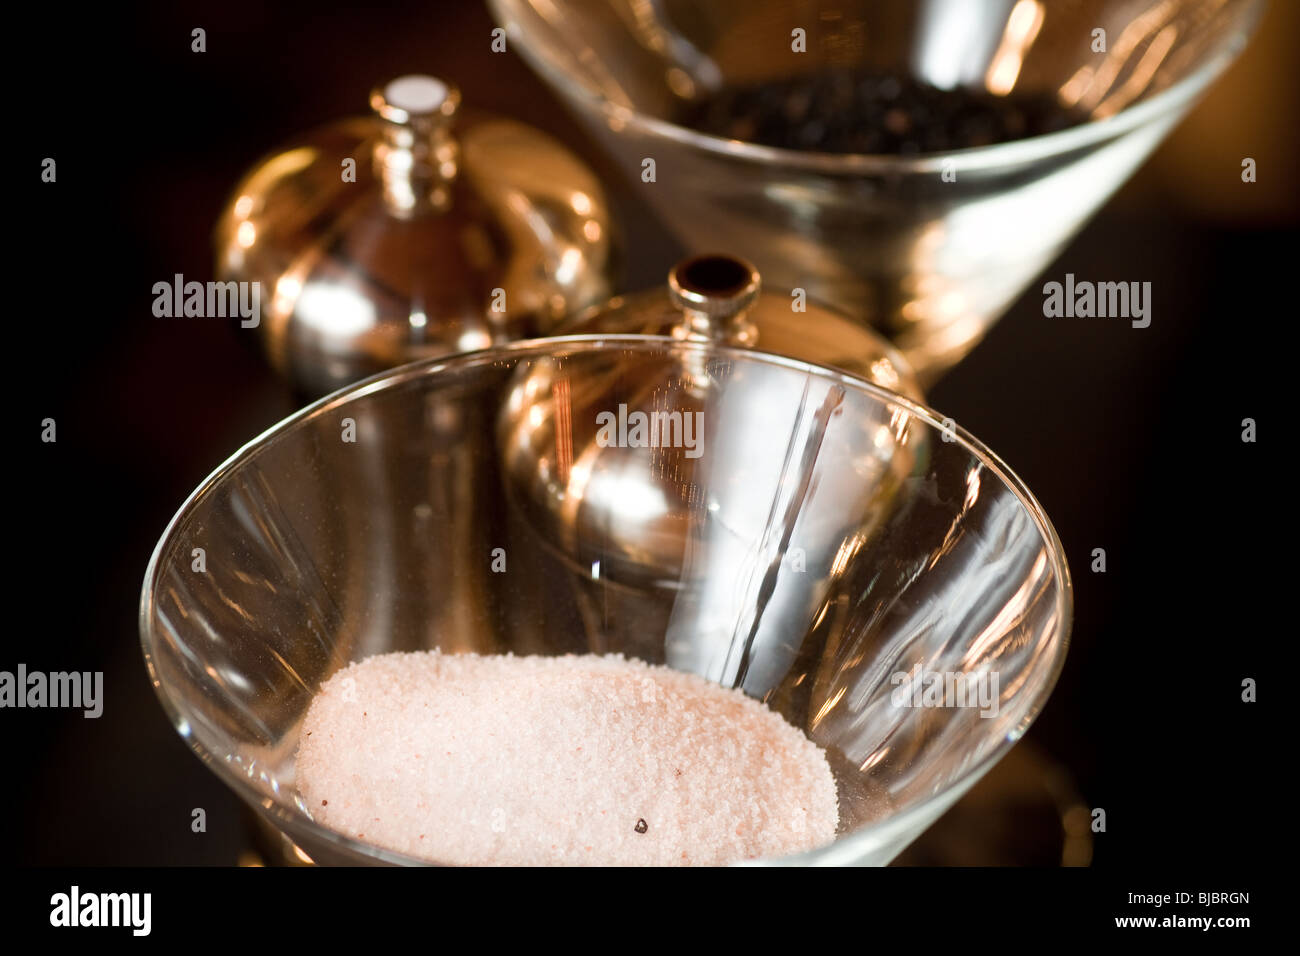 Salt and pepper displayed in open glasses, with metal pepper mills present. - Stock Image